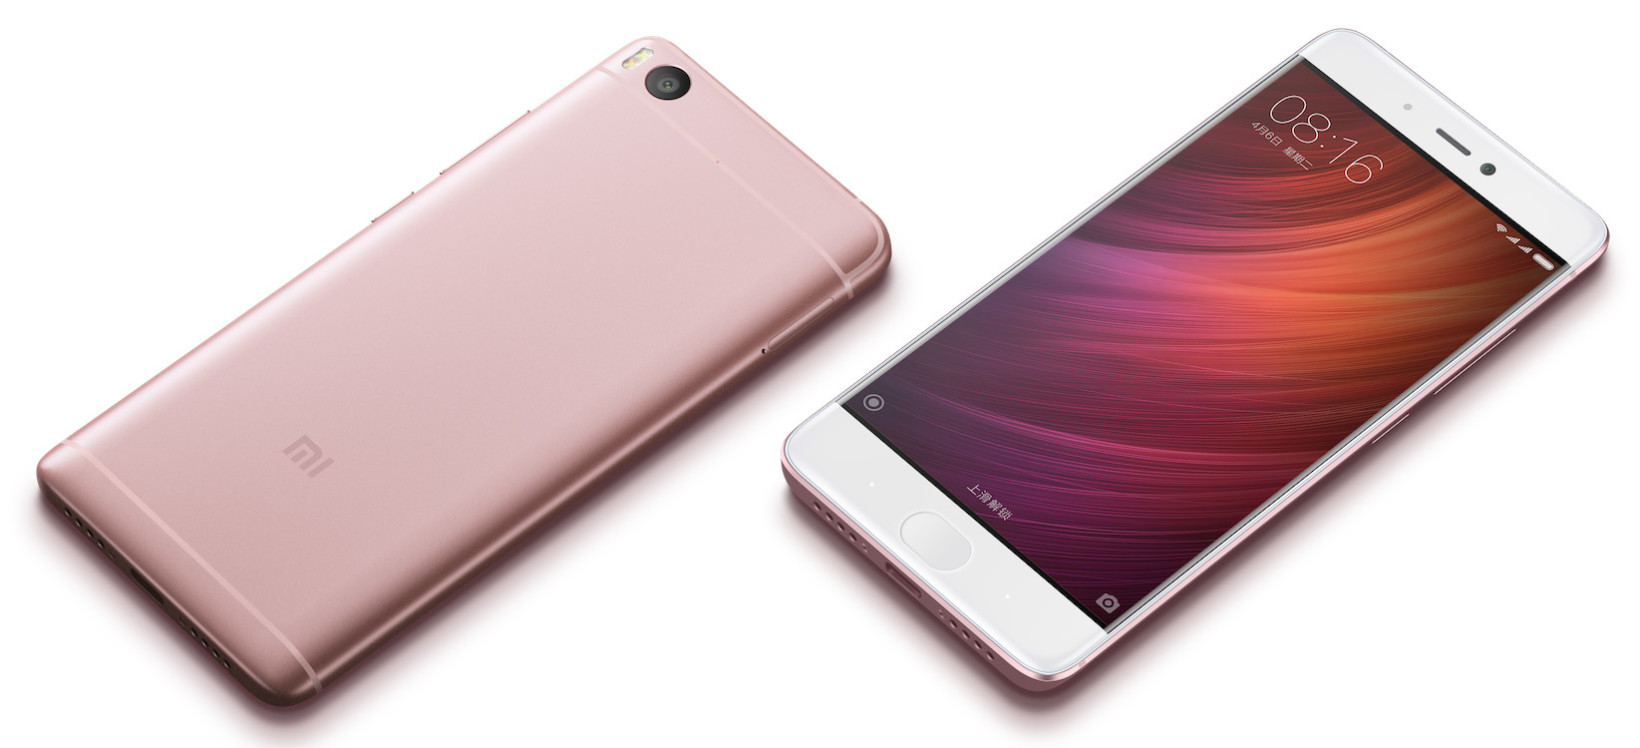 Xiaomi Puts The Pedal To Metal With New Mi 5s And Plus